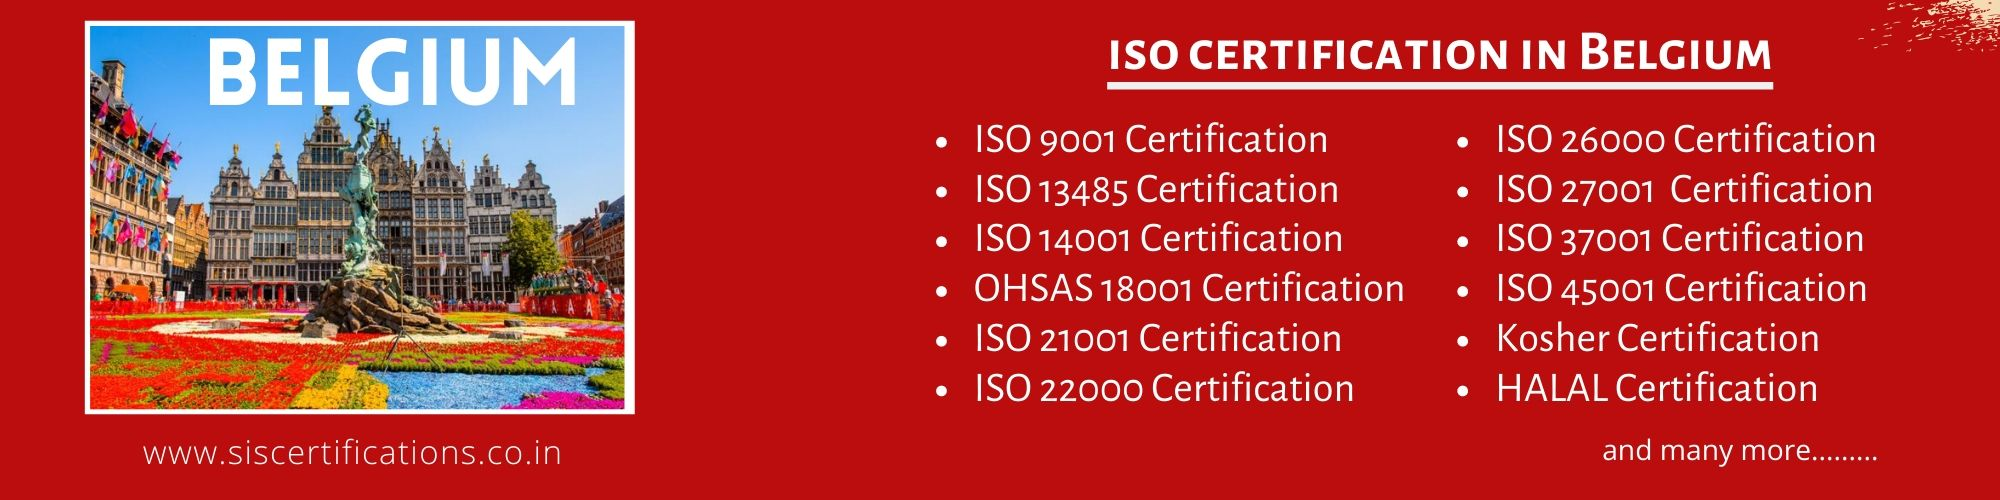 ISO Certification in Belgium